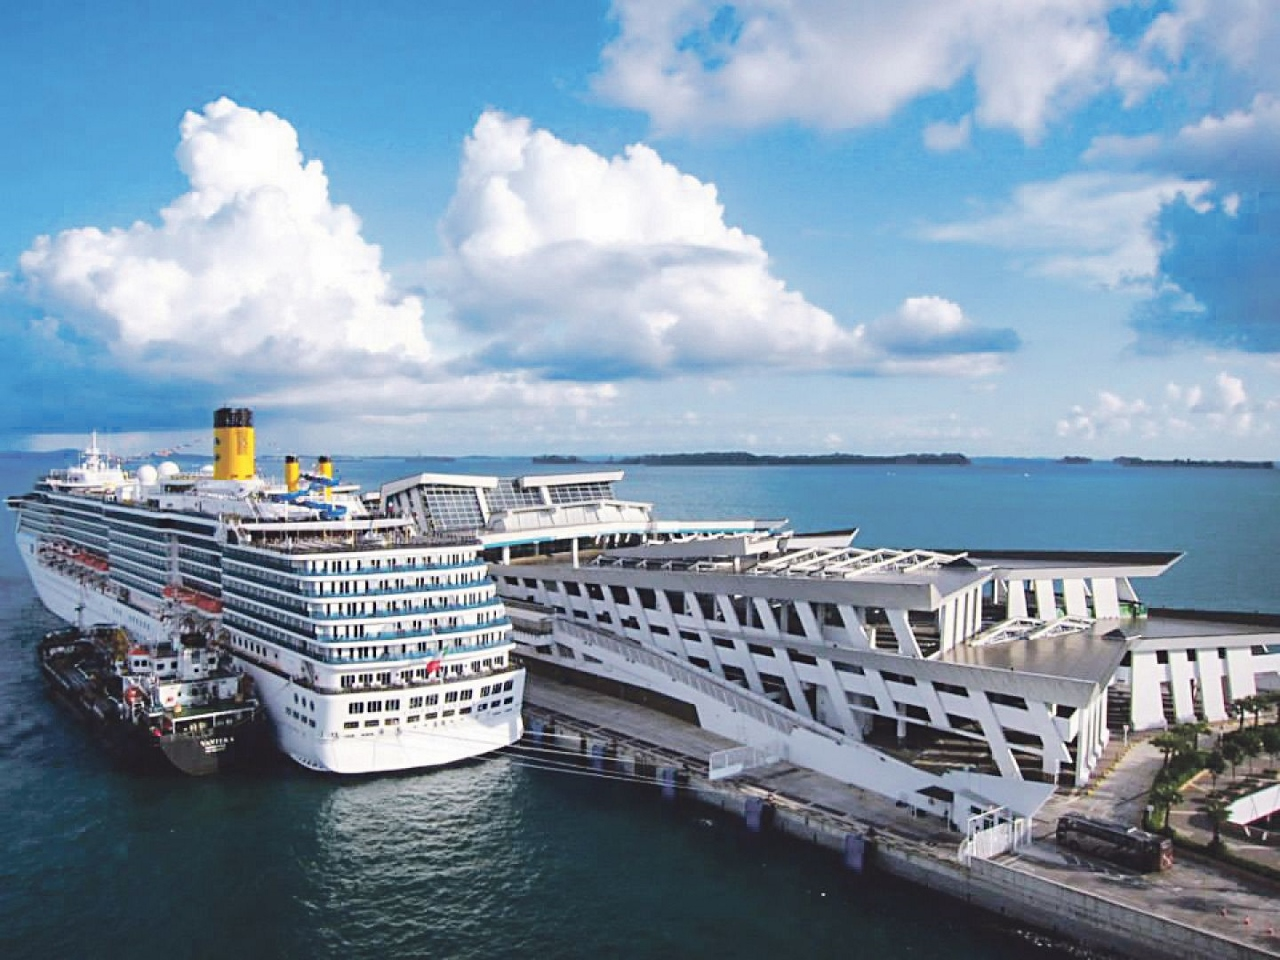 Cruise ships depart daily from Singapore